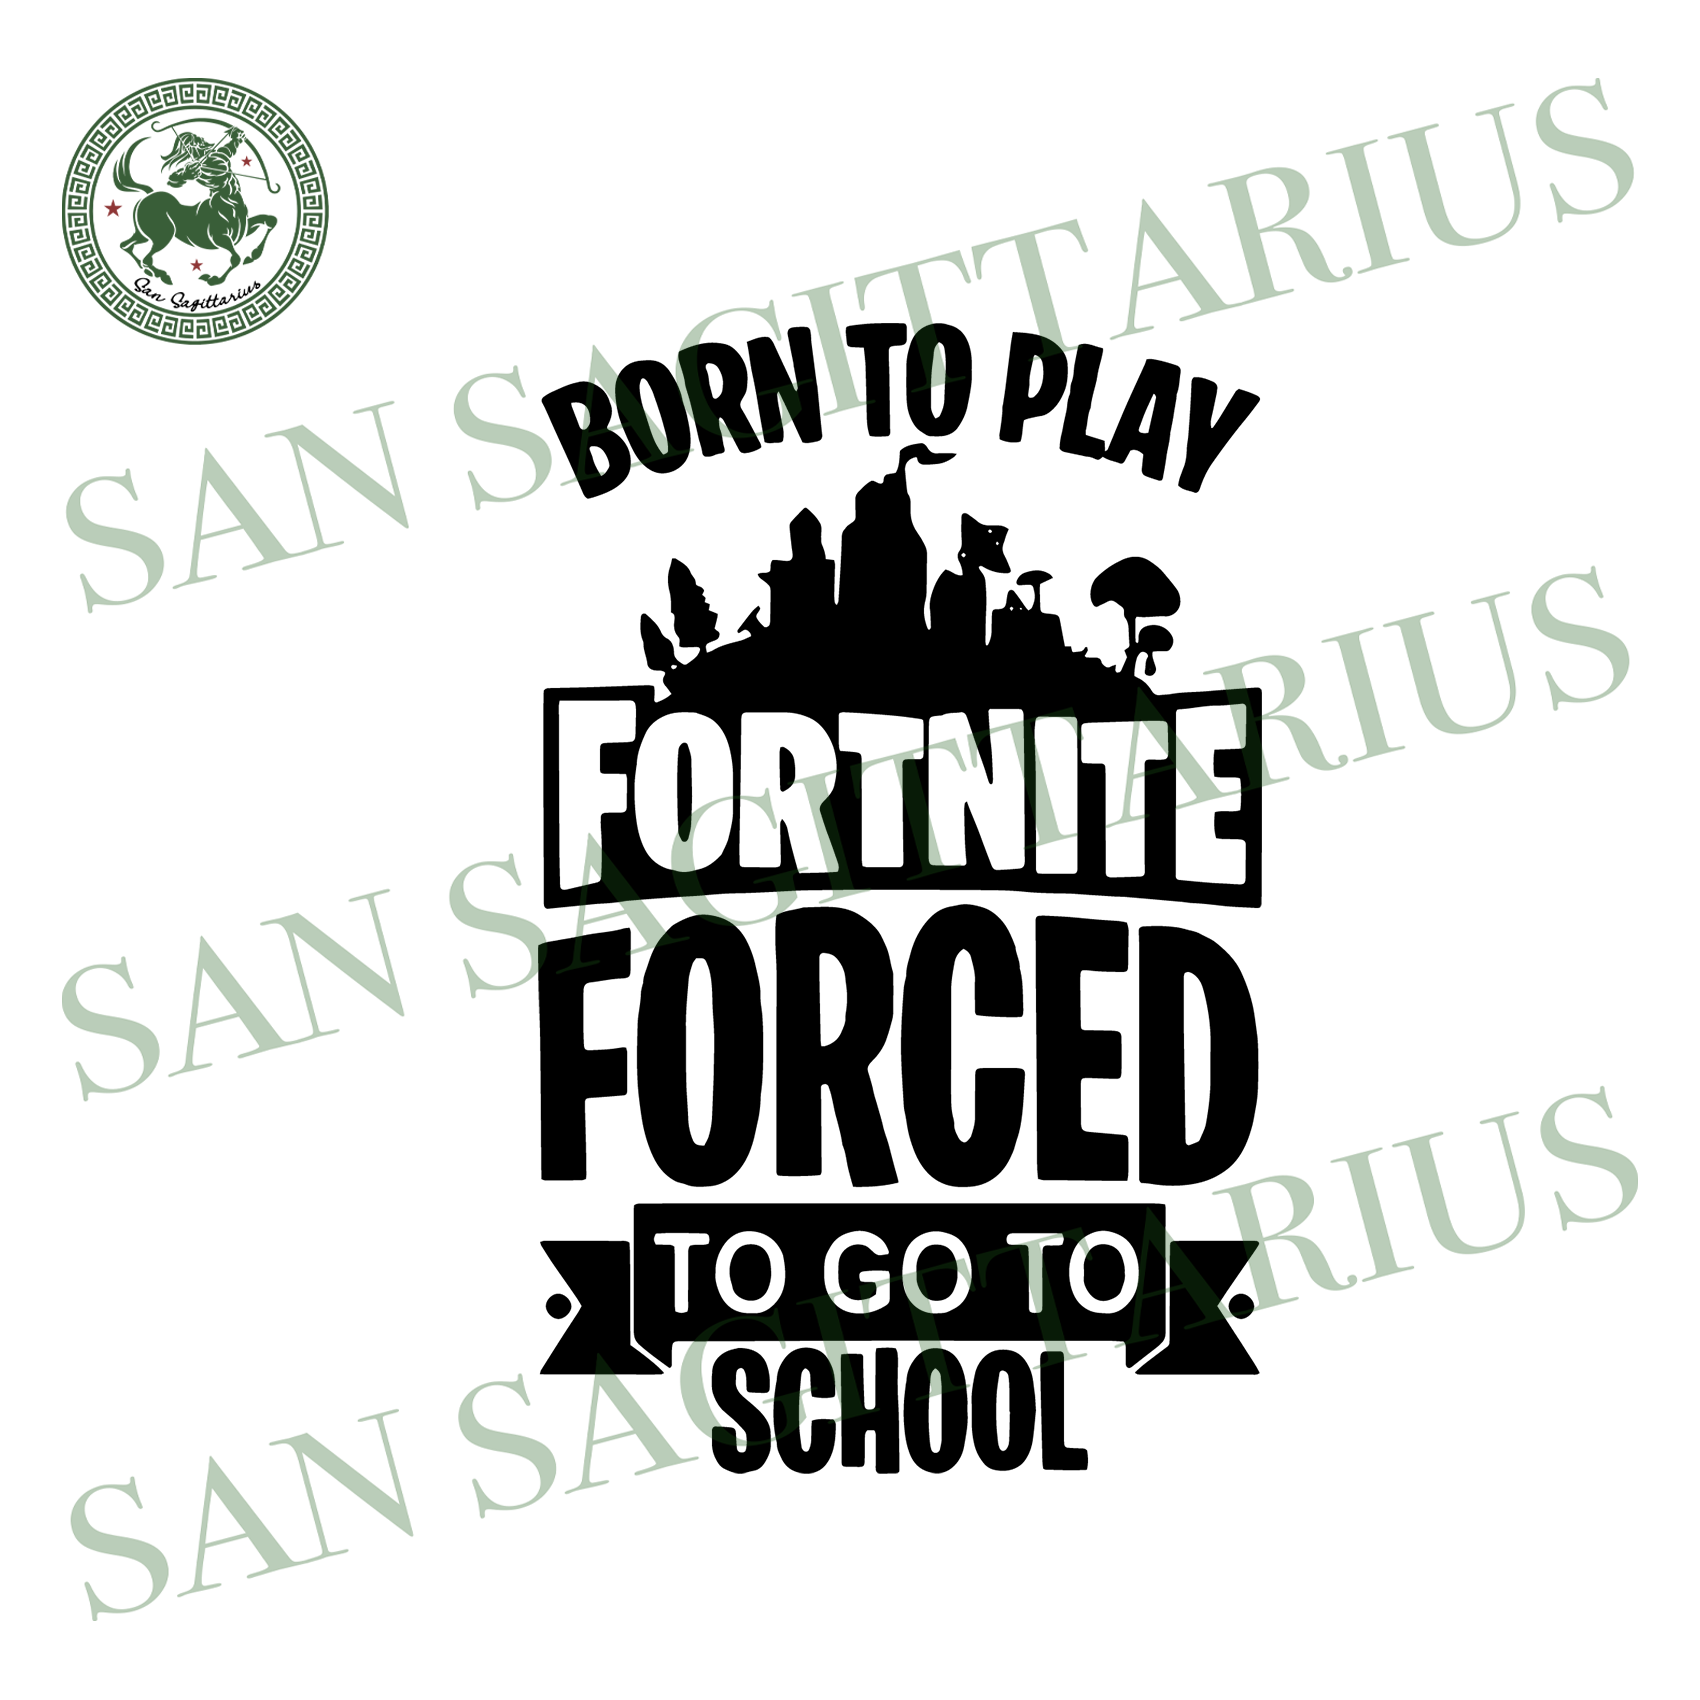 Born To Play Fortnite Forced To Go To School Svg,Fortnite Svg,Fortnite Gift,Fortnite Shirt,Saying Shirt,Funny Quotes Svg,Fortnite Forced Svg